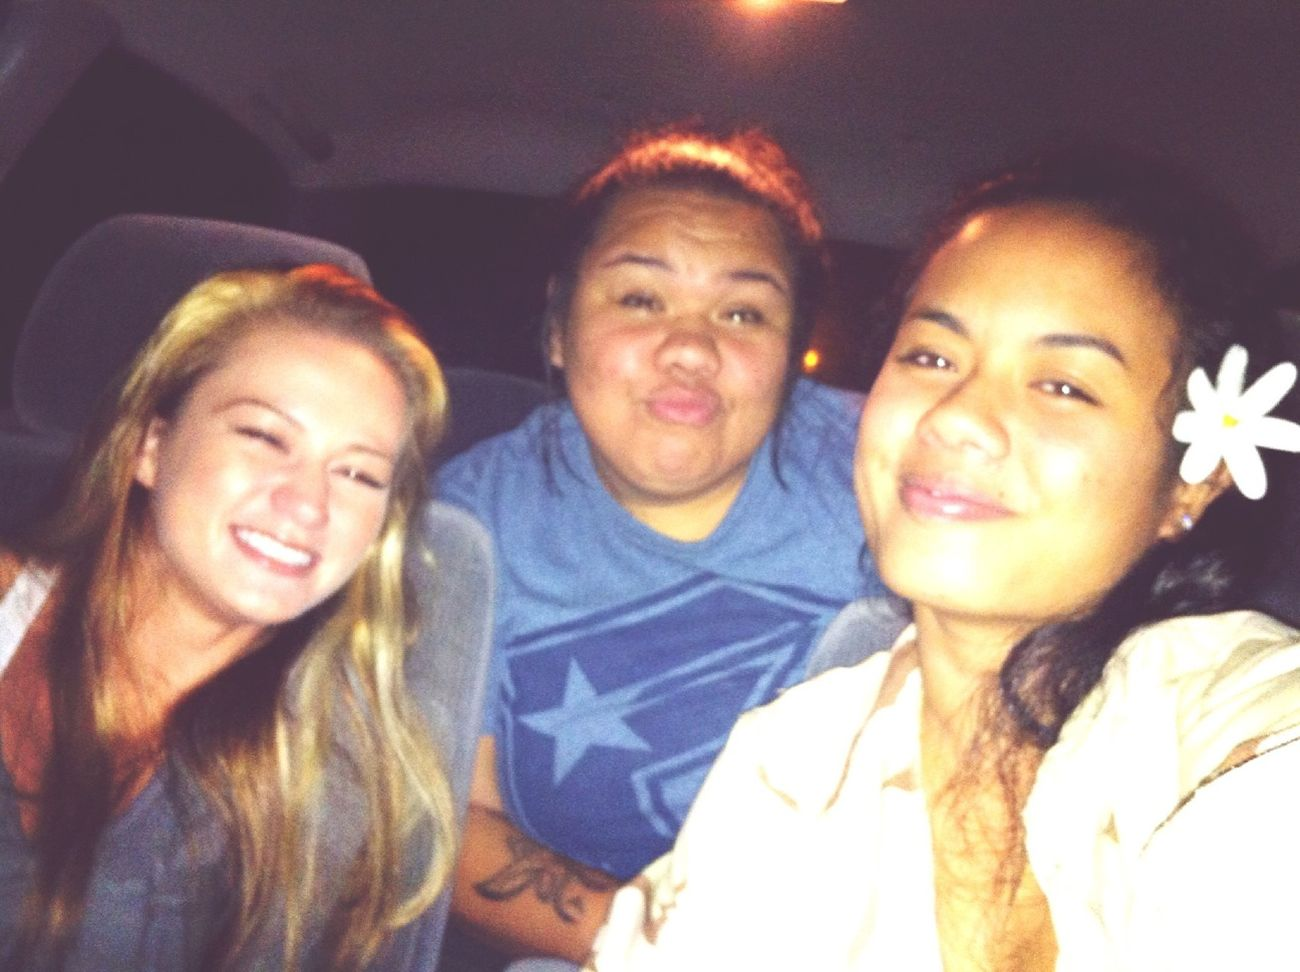 My Ride Or Dies Ryyye Heaaa. Been 'round Since Elementary Days Bby, Dont Fuck Widd Itttt.